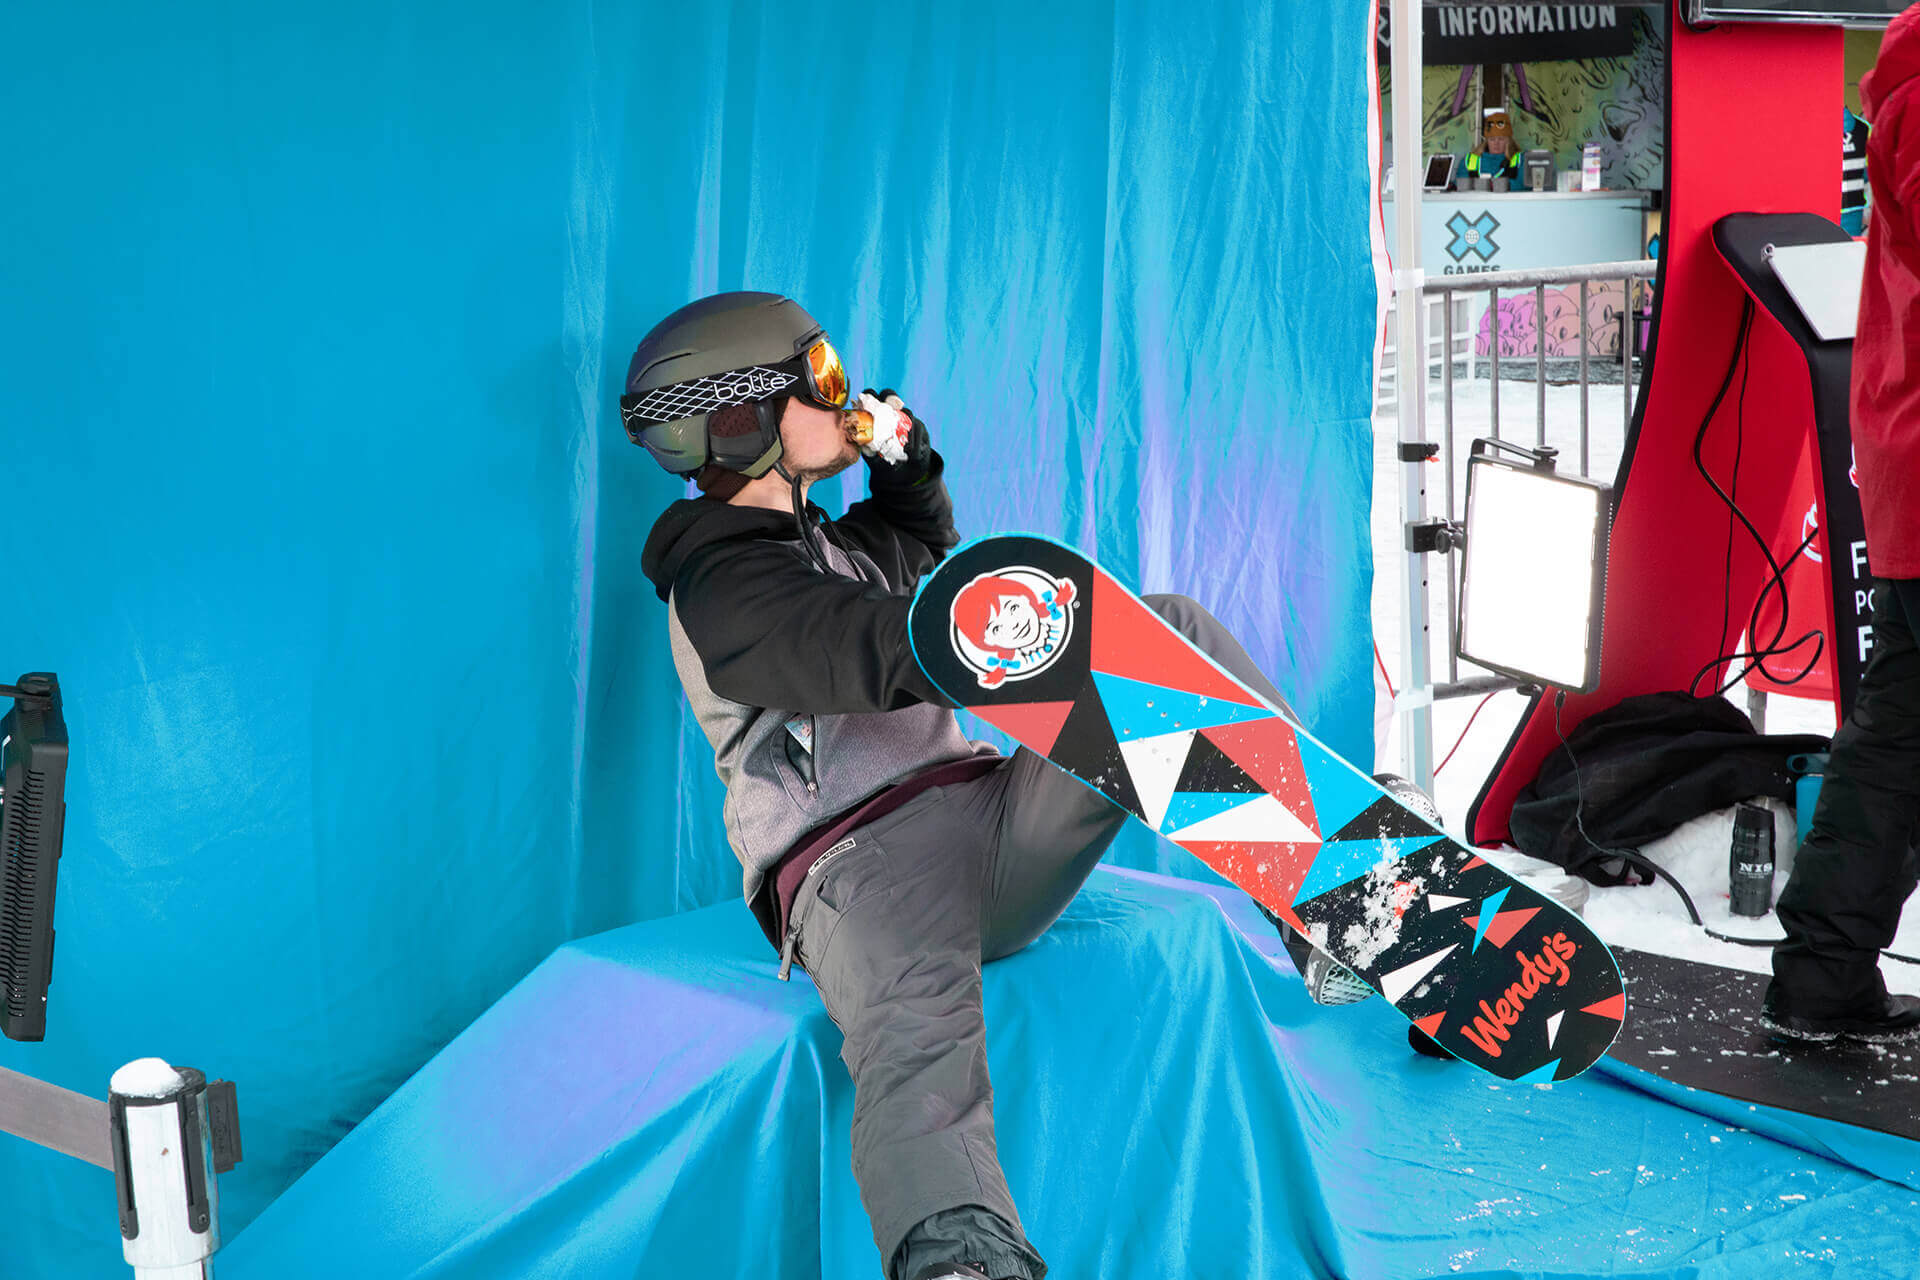 With social media marketing in mind, TMA created a Pose-Like-A-Pro green-screen photo op where fans could snap a pic while strapped into branded Wendy's snow gear.